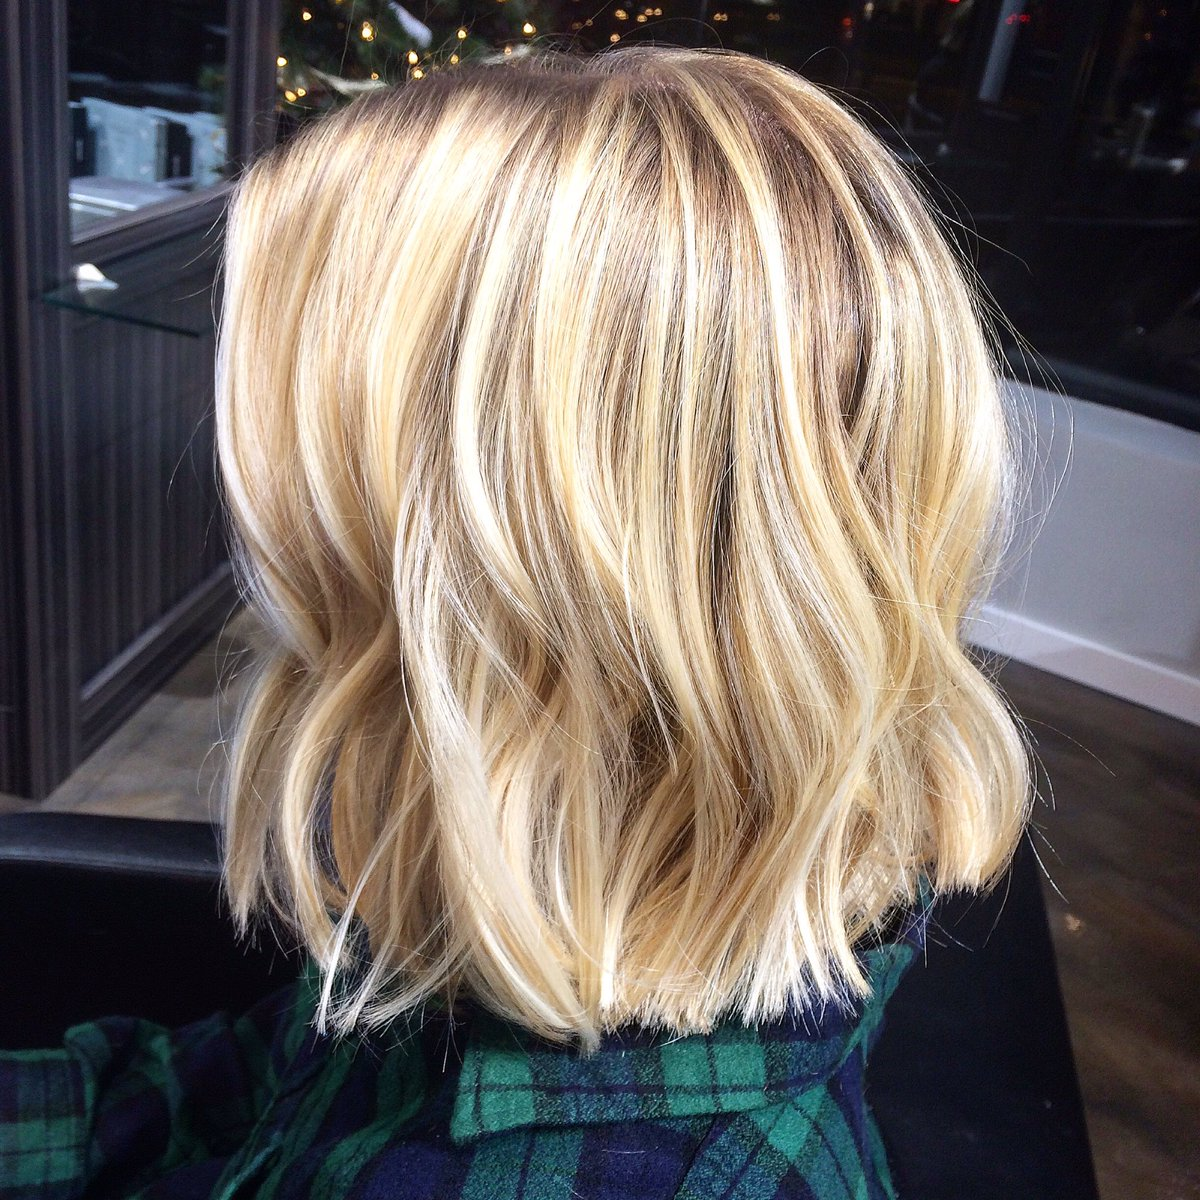 Ginger Salon On Twitter The Perfect Balayage Blunt Cut